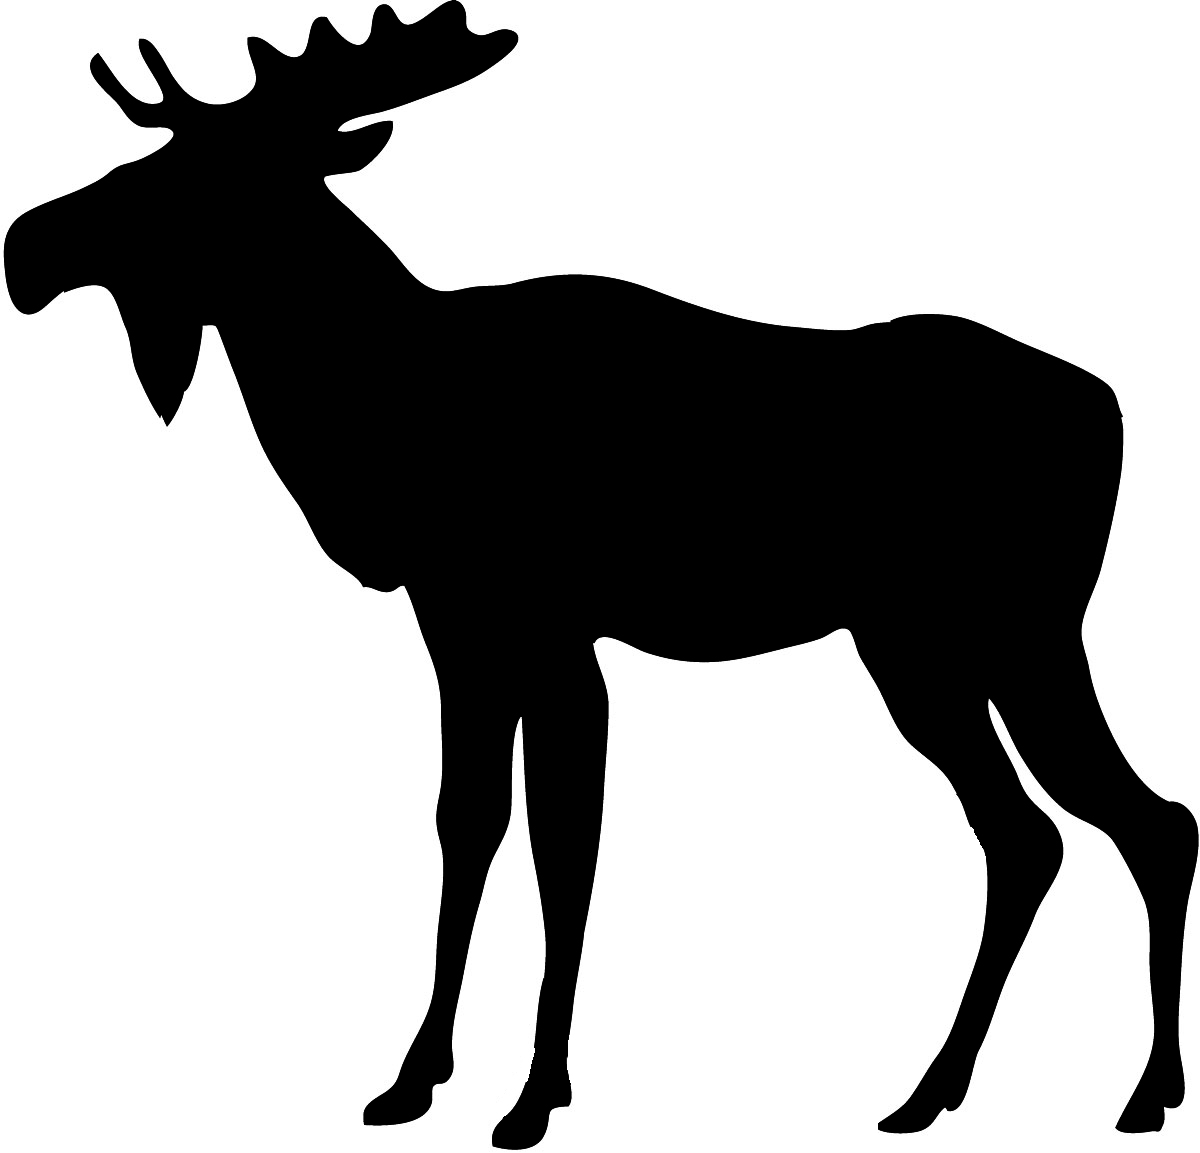 Small clipart moose Cliparts Animal Download Art Clip